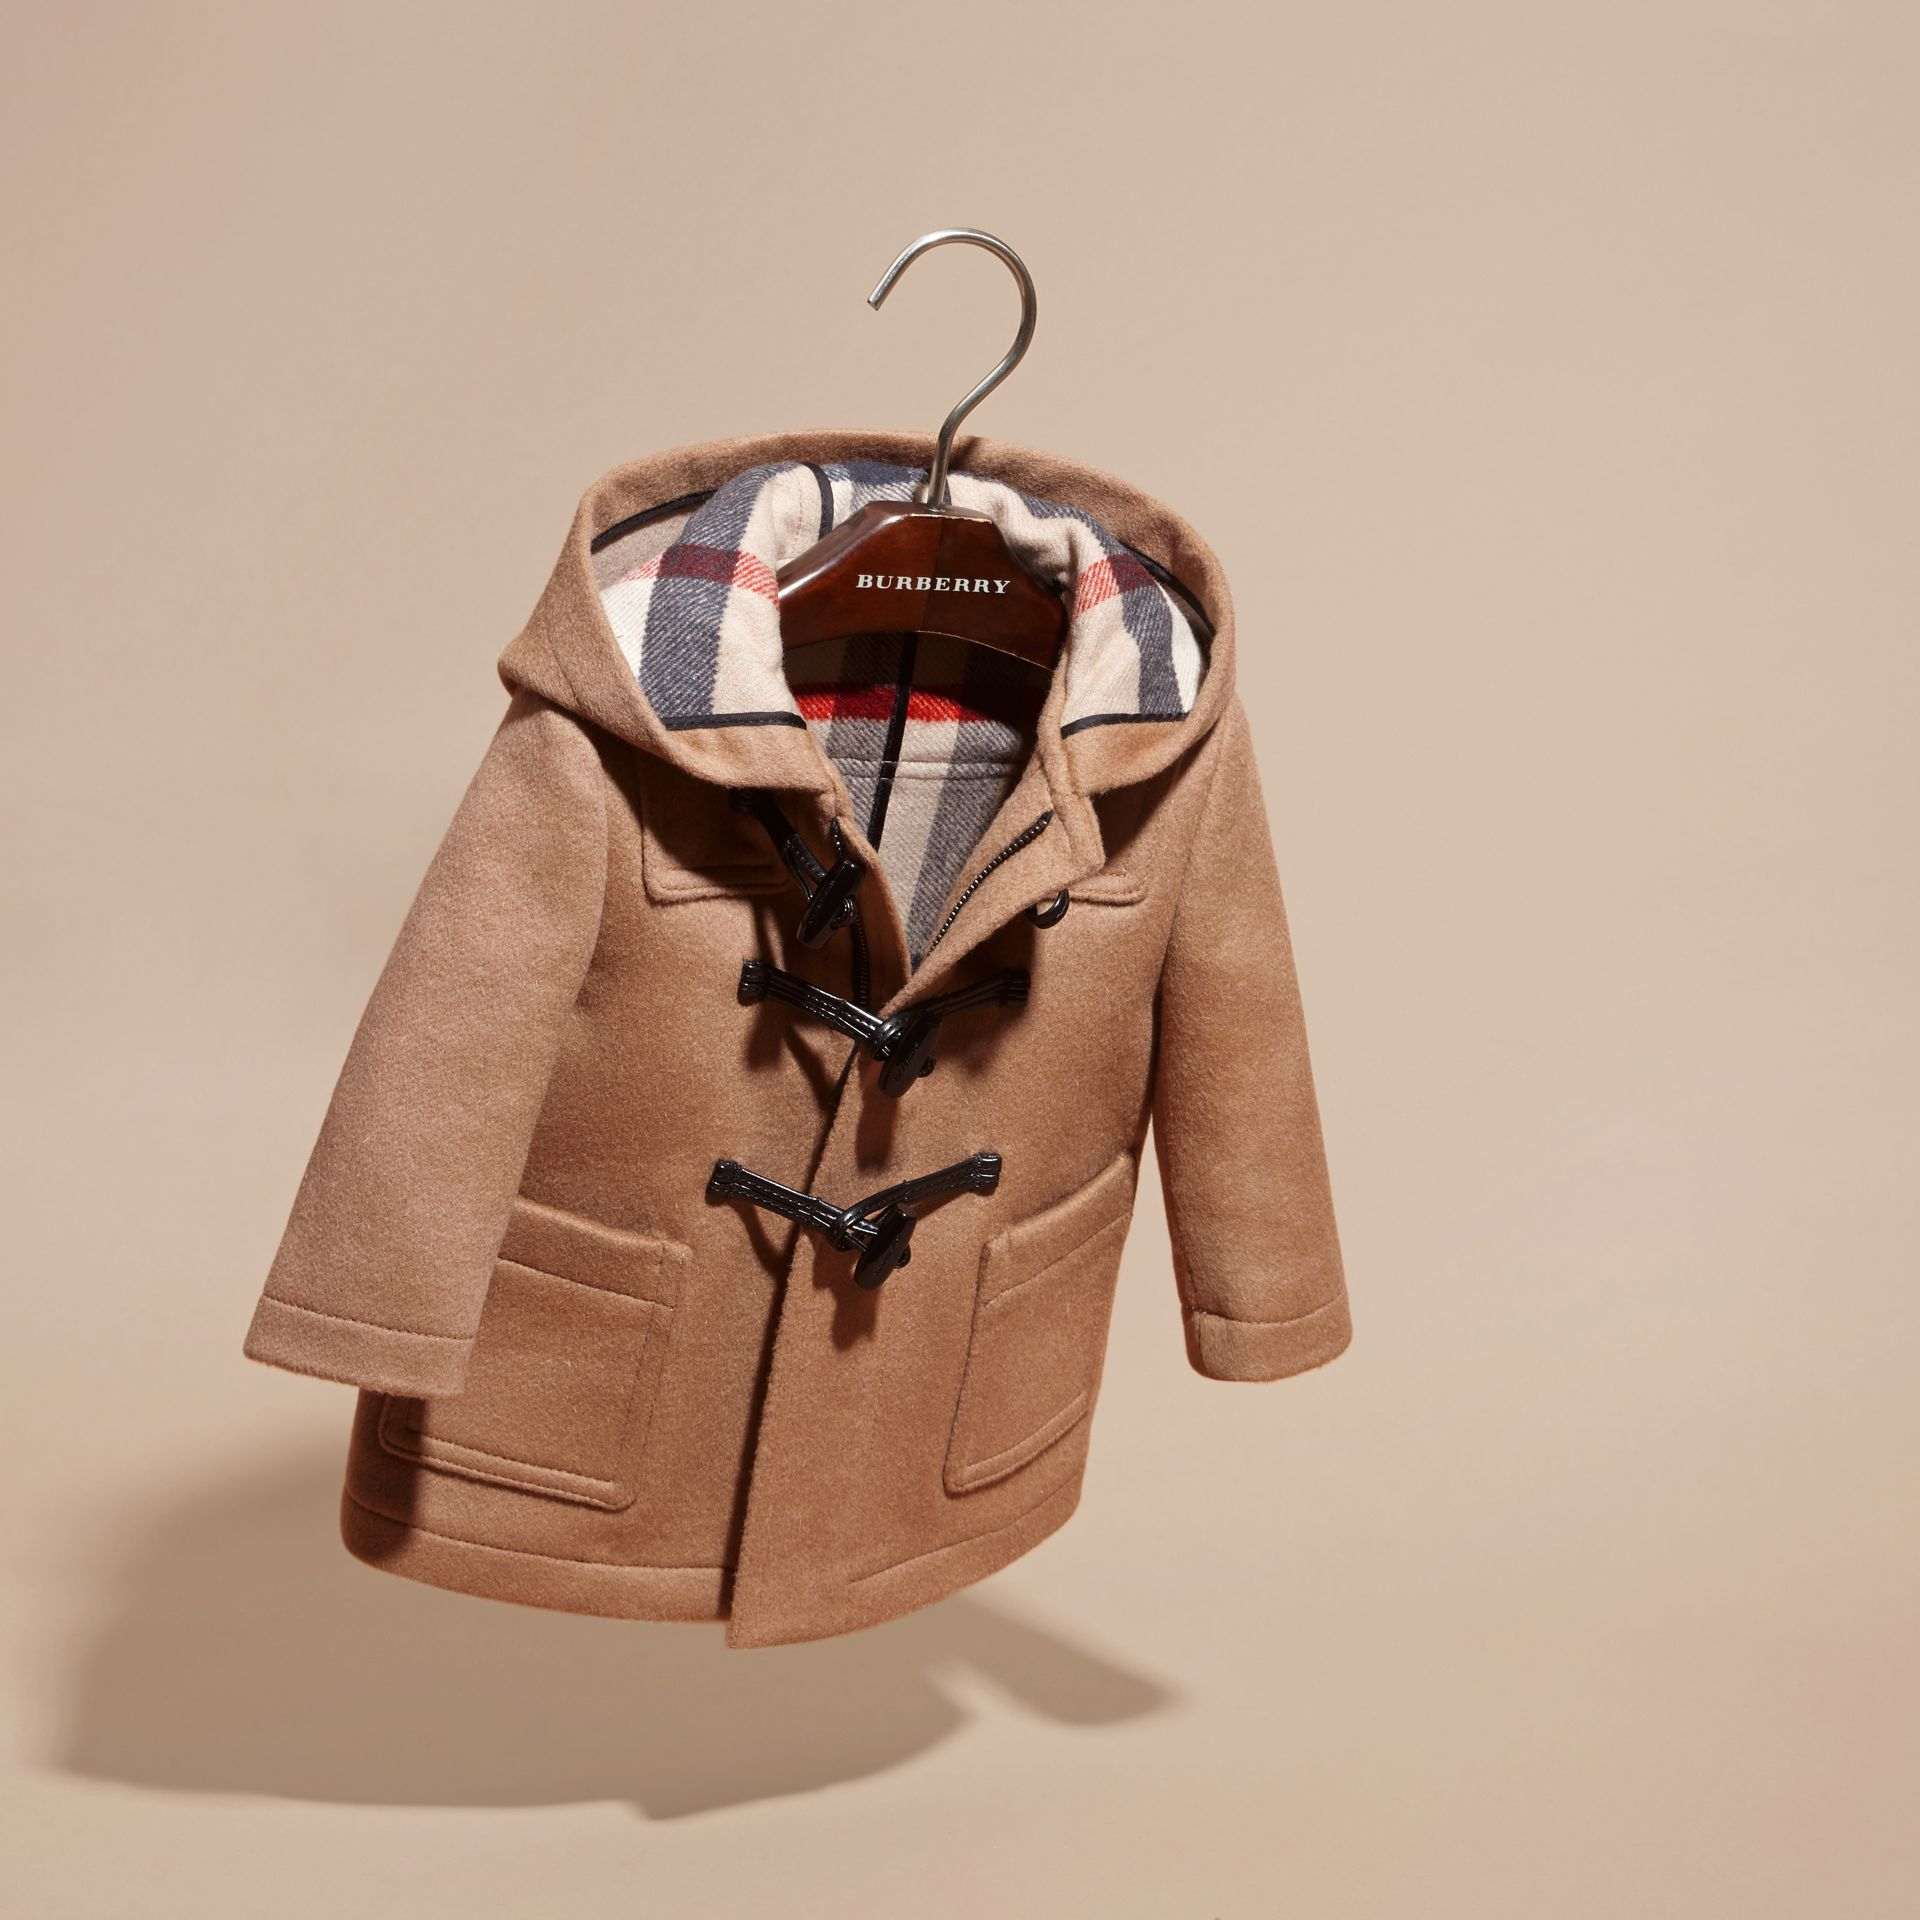 Wool Duffle Coat in New Camel | Burberry - gallery image 3